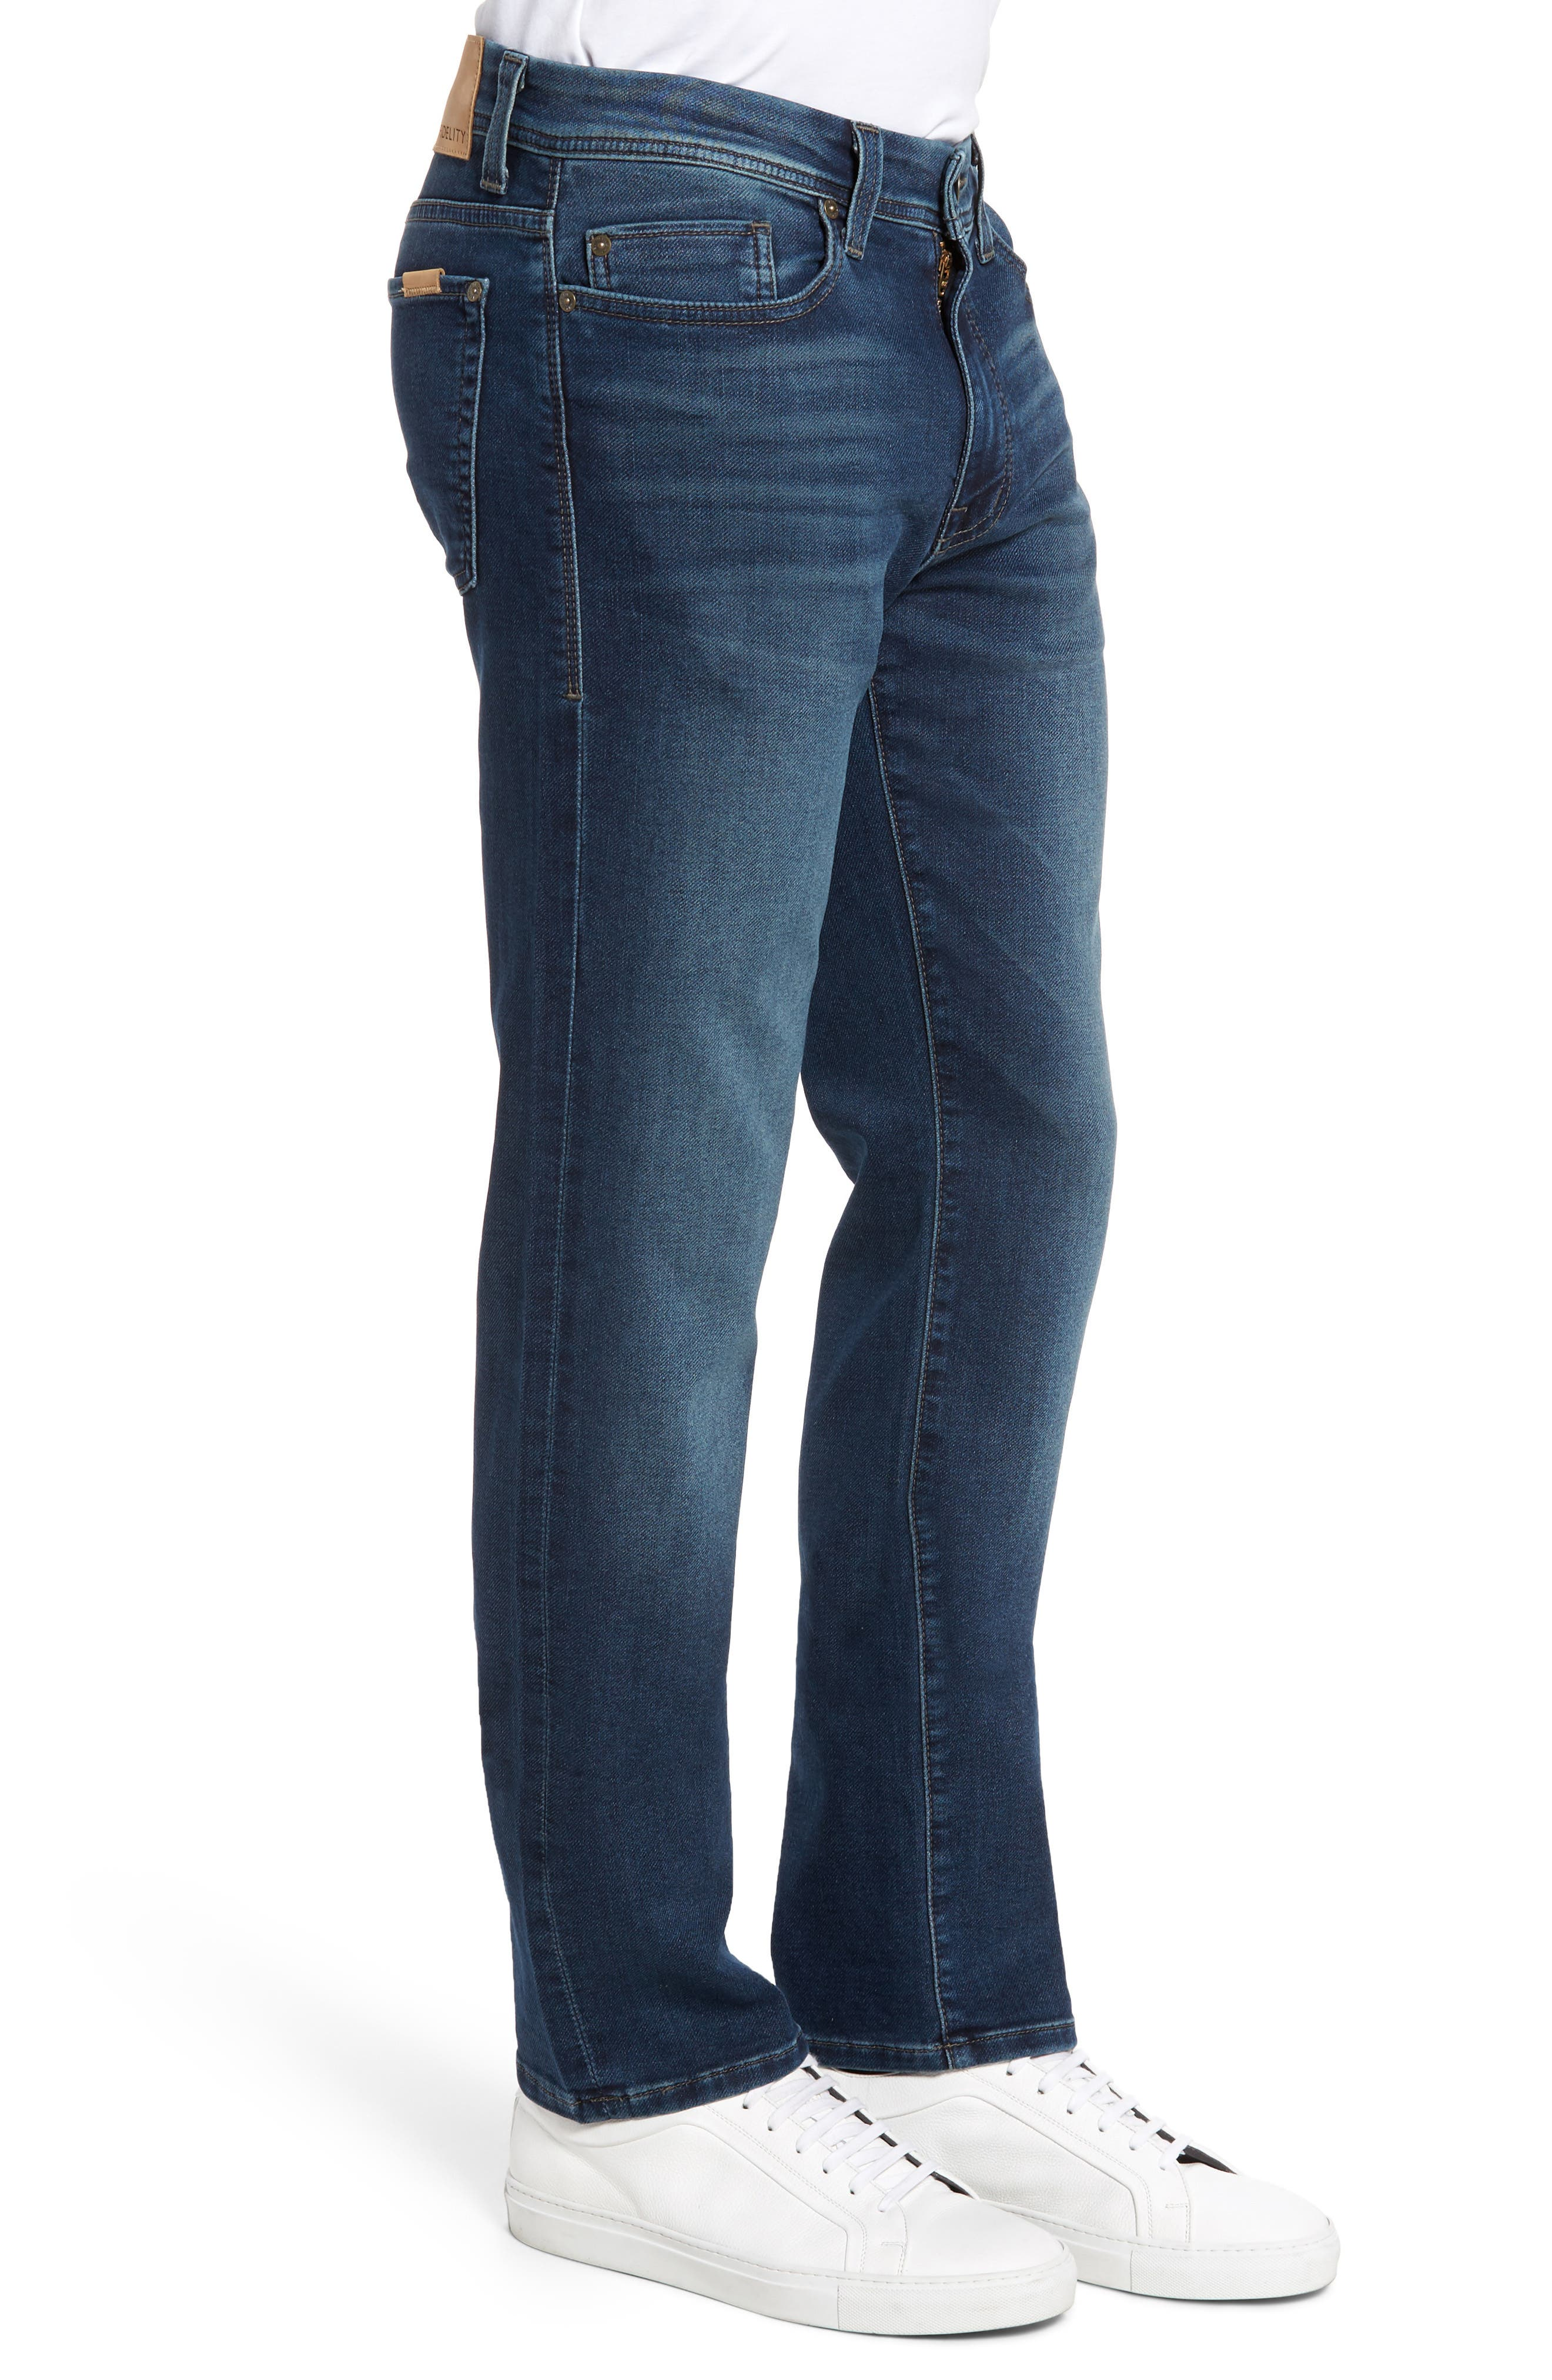 Jimmy Slim Straight Leg Jeans,                             Alternate thumbnail 3, color,                             Talk About Blue